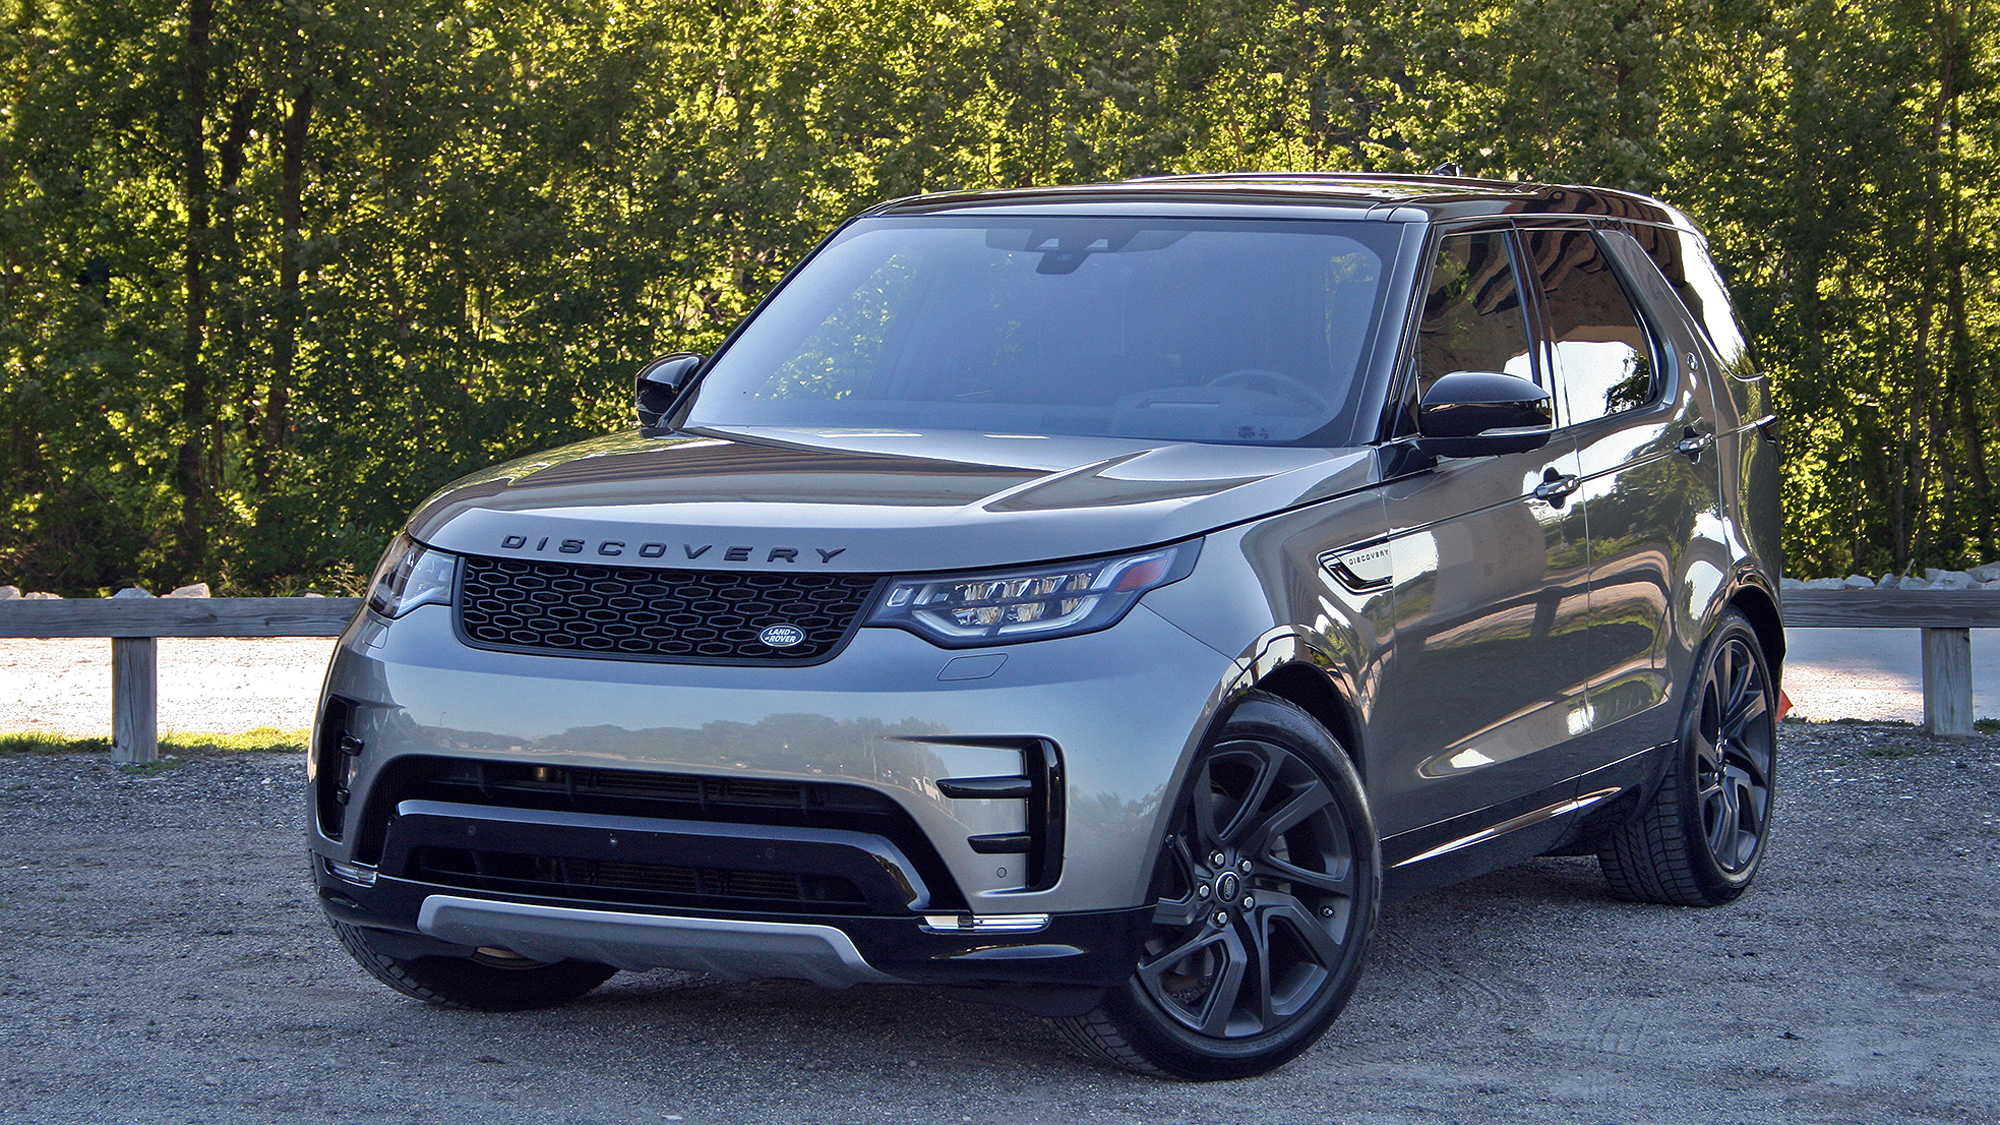 2017 land rover discovery driven review top speed. Black Bedroom Furniture Sets. Home Design Ideas